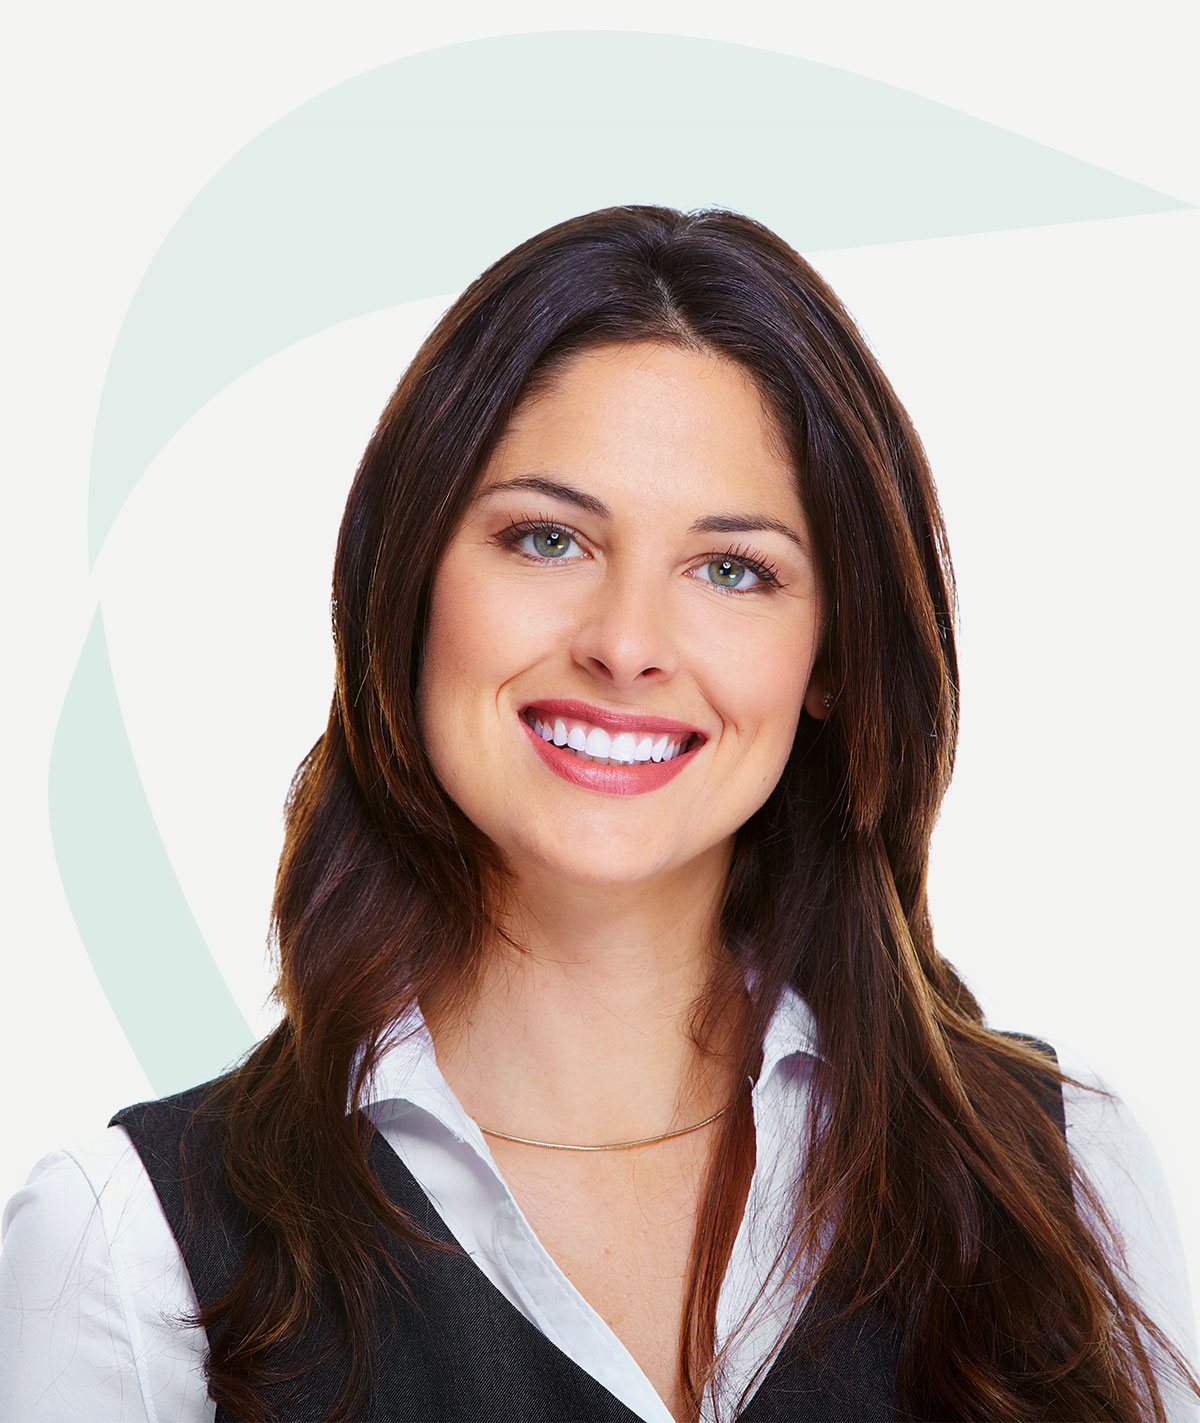 Virtual Accountant providing assistance for virtual accounting and bookkeeping services